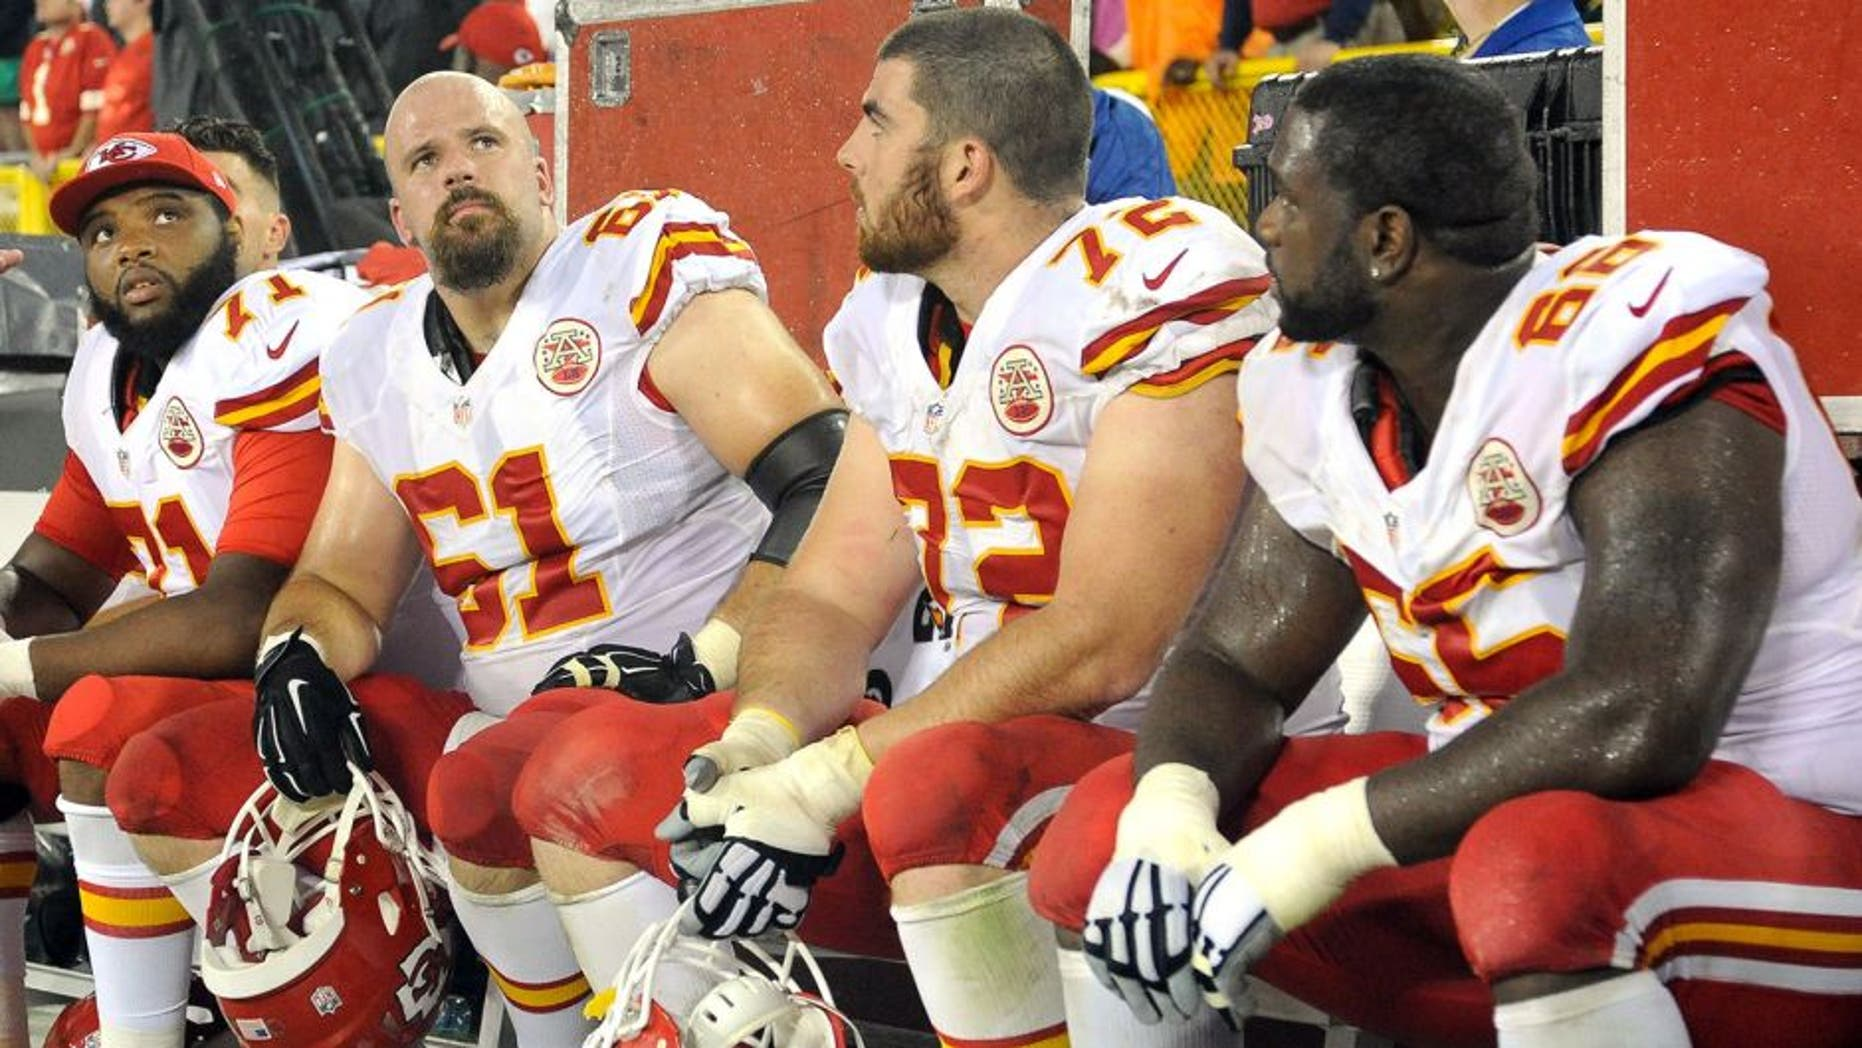 Sep 28, 2015; Green Bay, WI, USA; Kansas City Chiefs offensive tackle Jeff Allen (71), center Mitch Morse (61), offensive tackle Eric Fisher (72) and guard Ben Grubbs (66) watch the final minutes of the game against the Green Bay Packers at Lambeau Field. Mandatory Credit: Benny Sieu-USA TODAY Sports